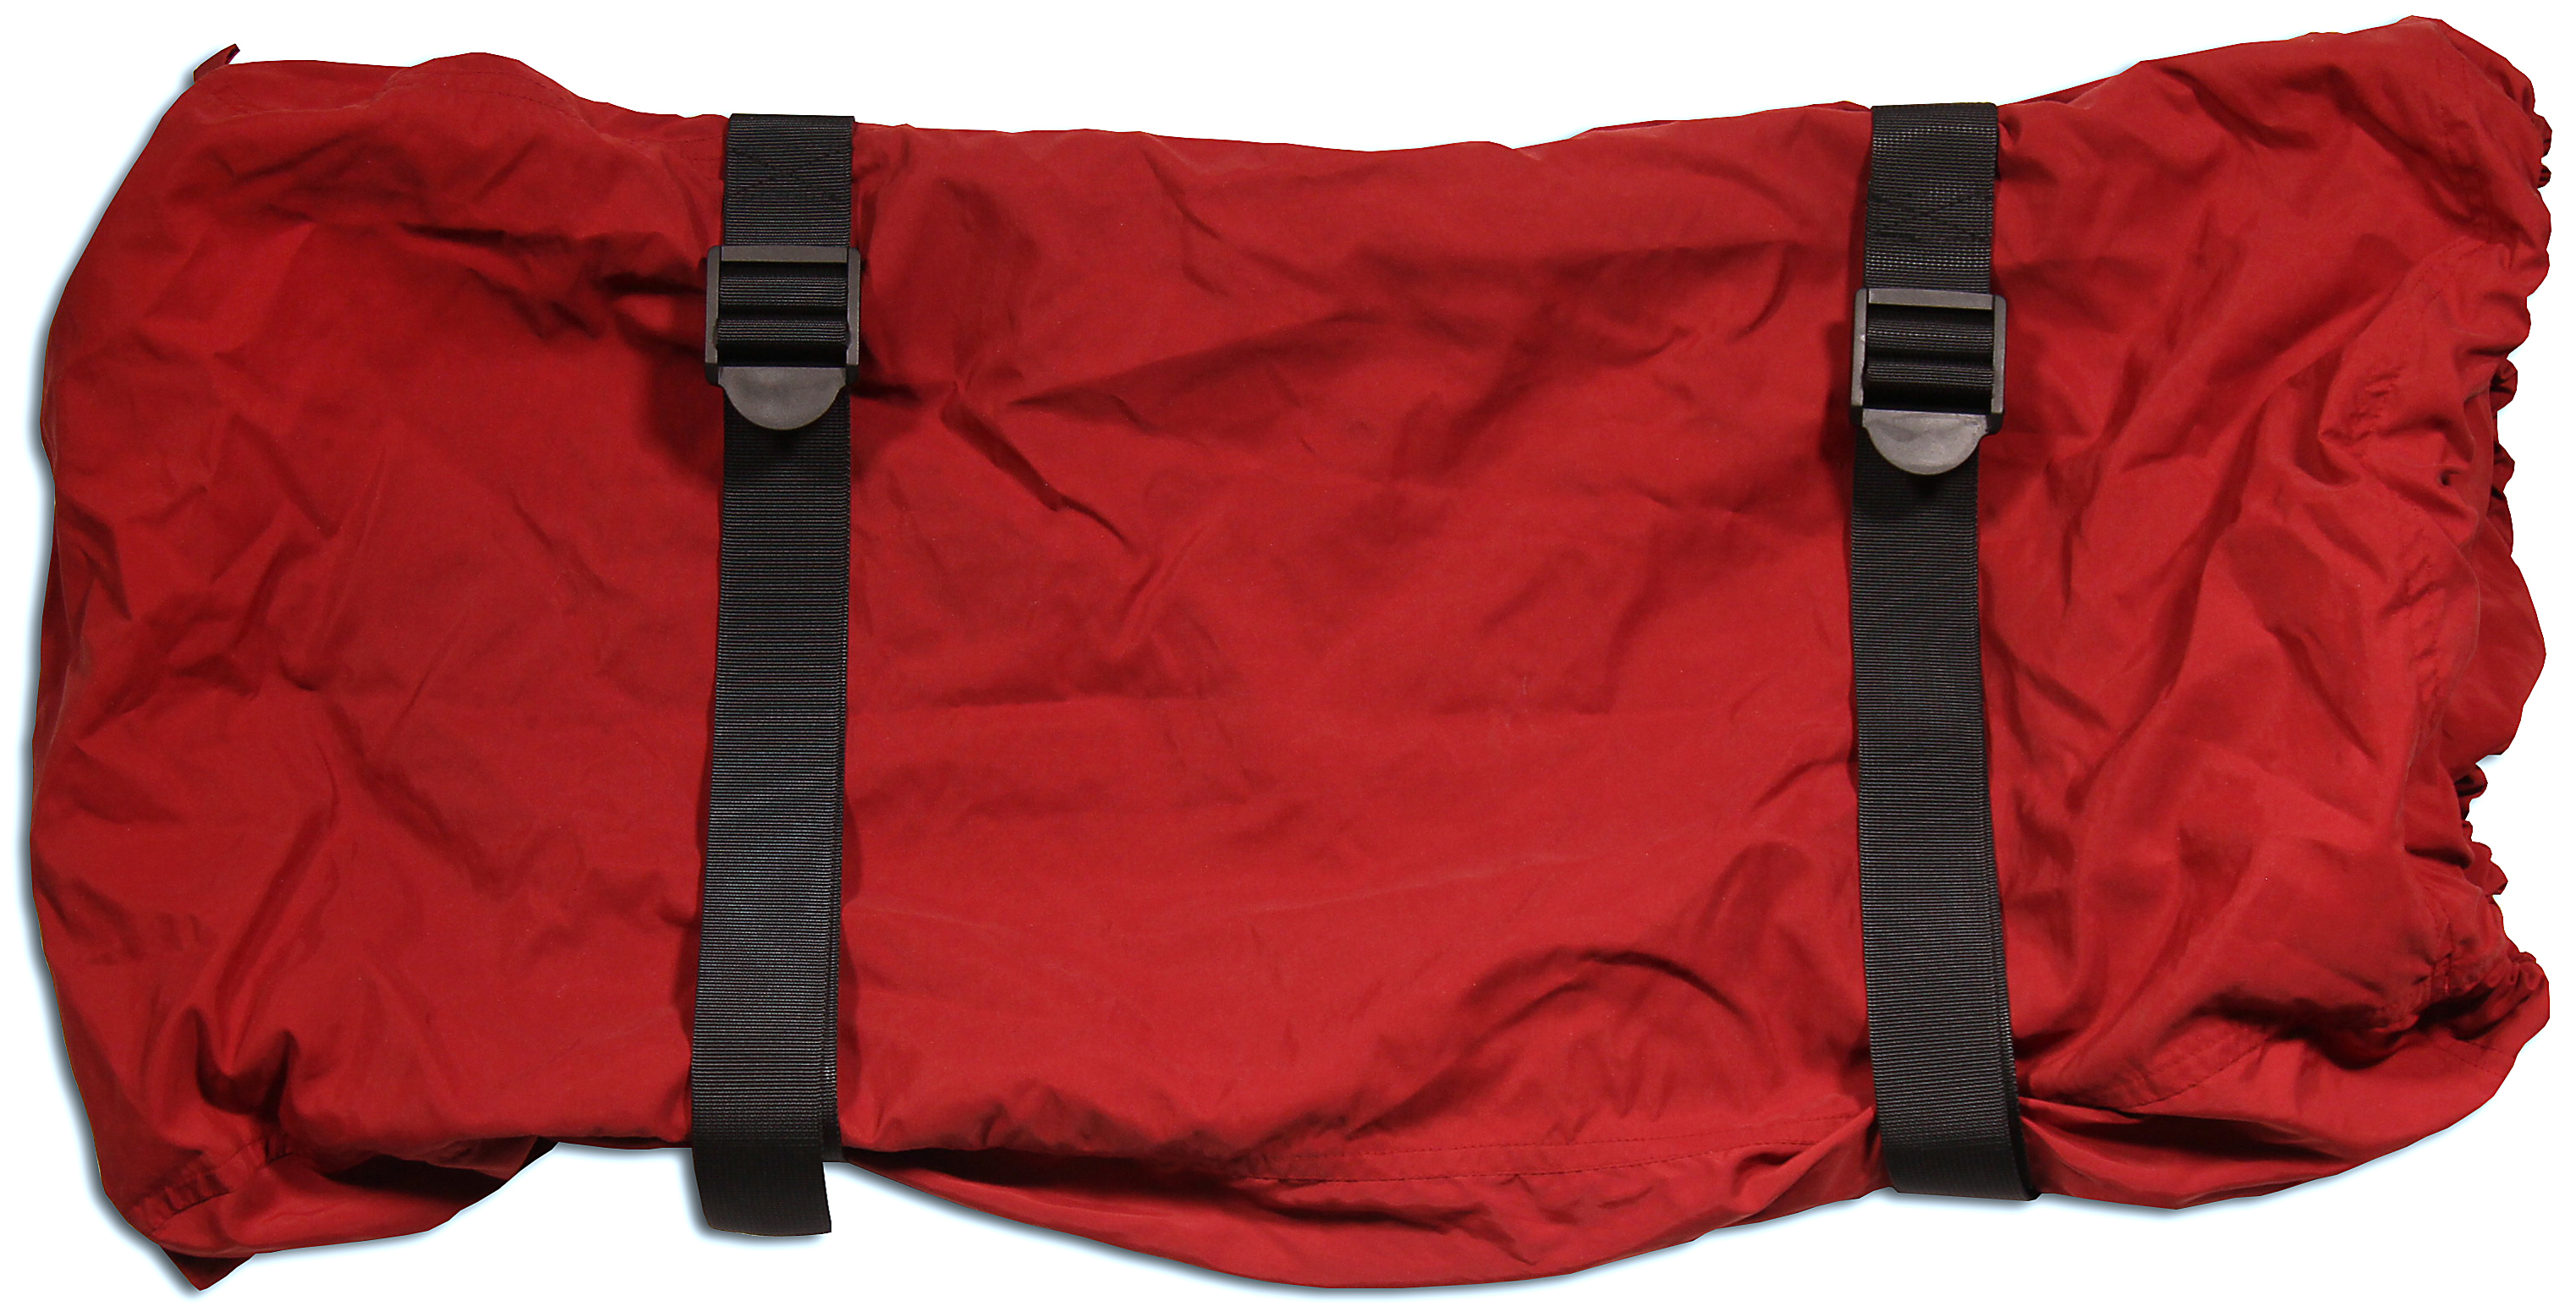 NEW - Blood Red Game Bags for Hunters, under $20!